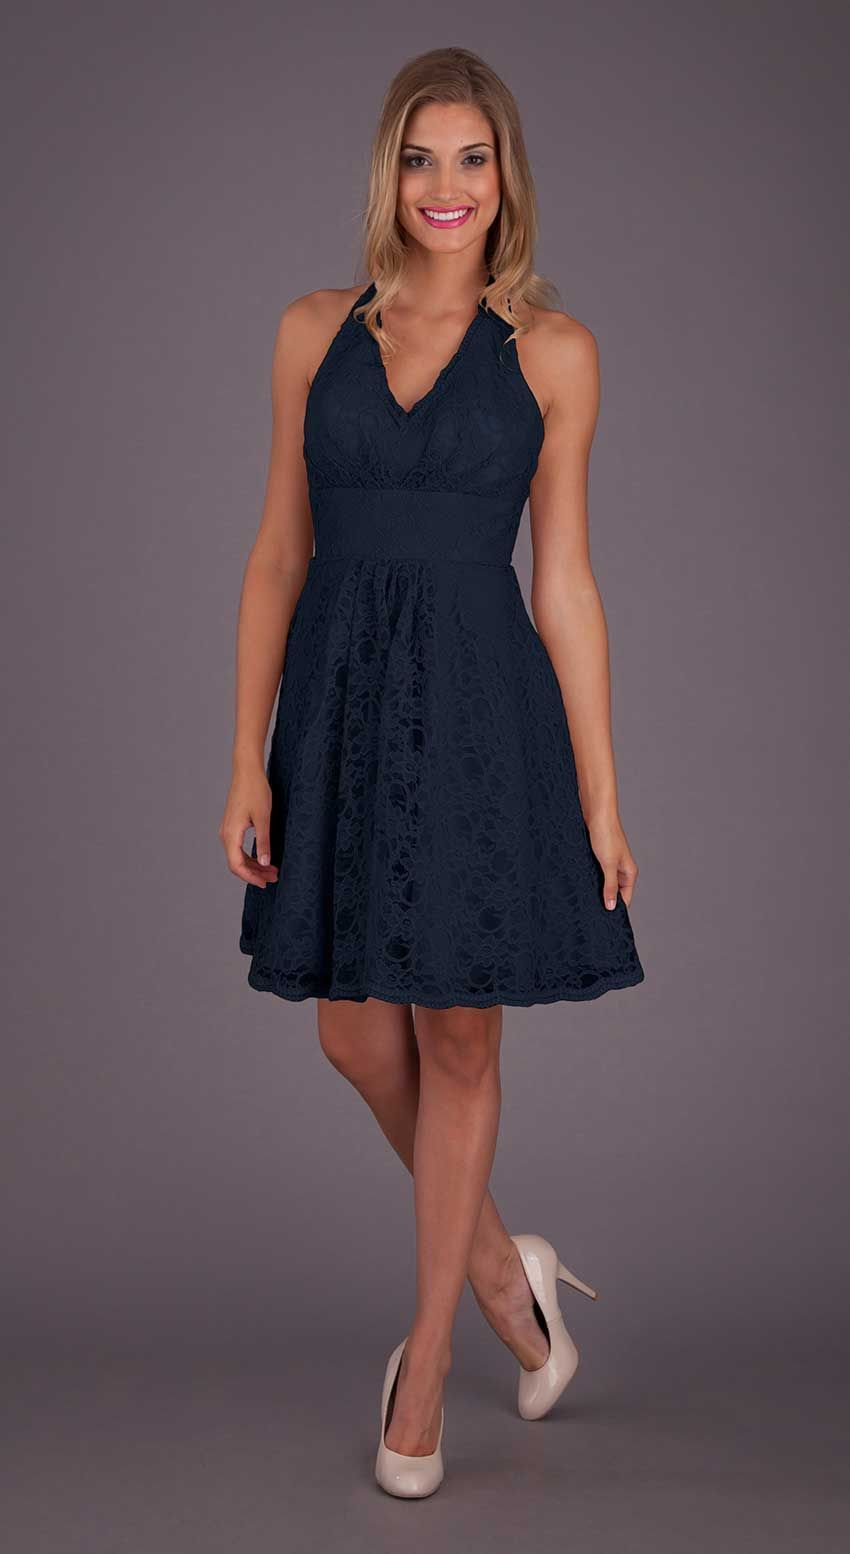 Lace dress navy  A short and sweet navy lace bridesmaid dress that your umaids will